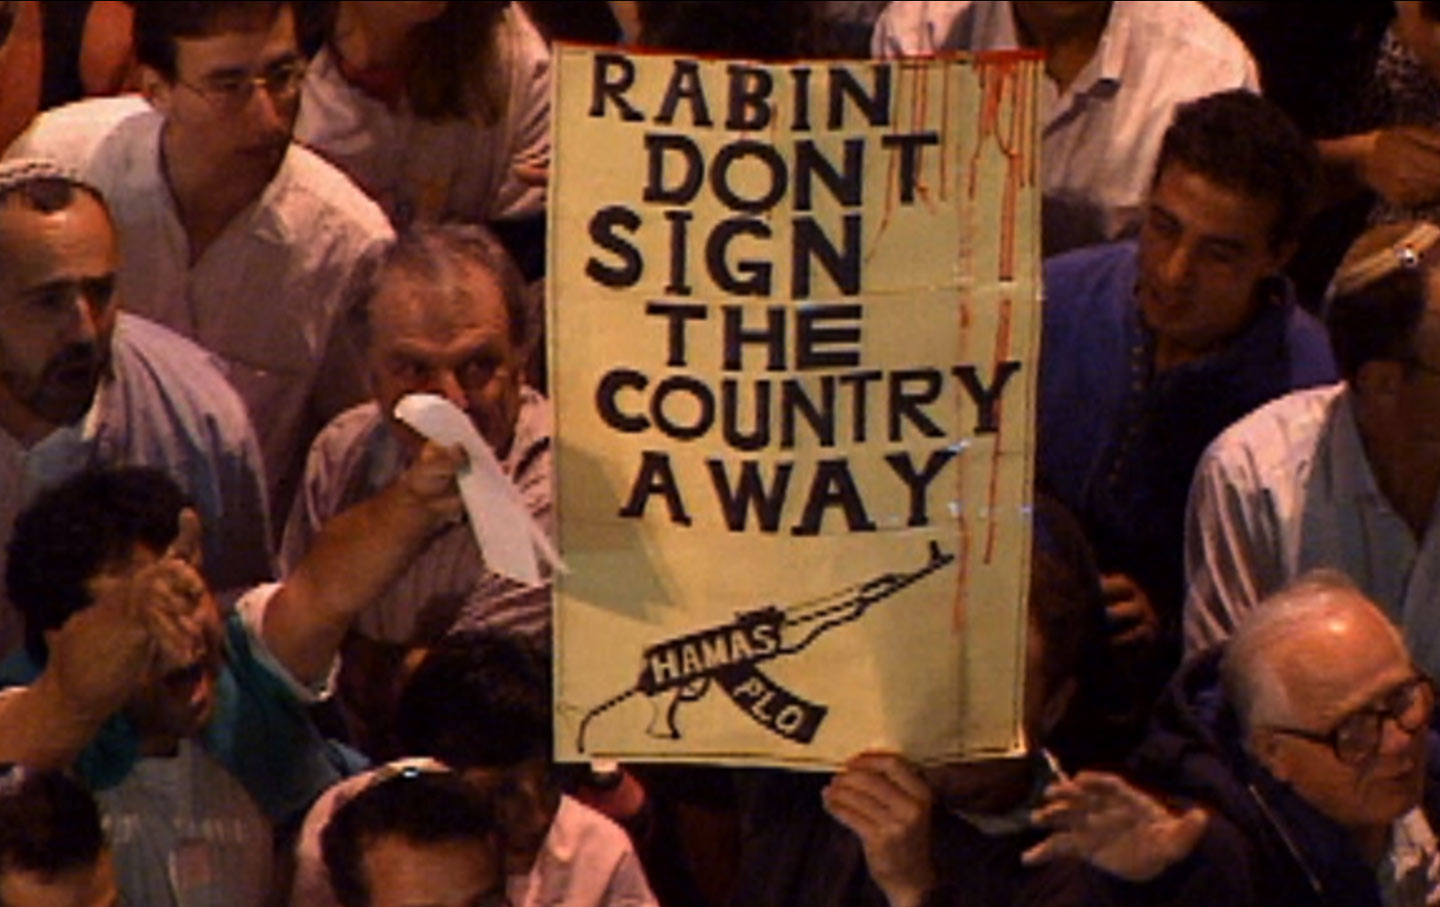 A scene from Rabin, the Last Day.